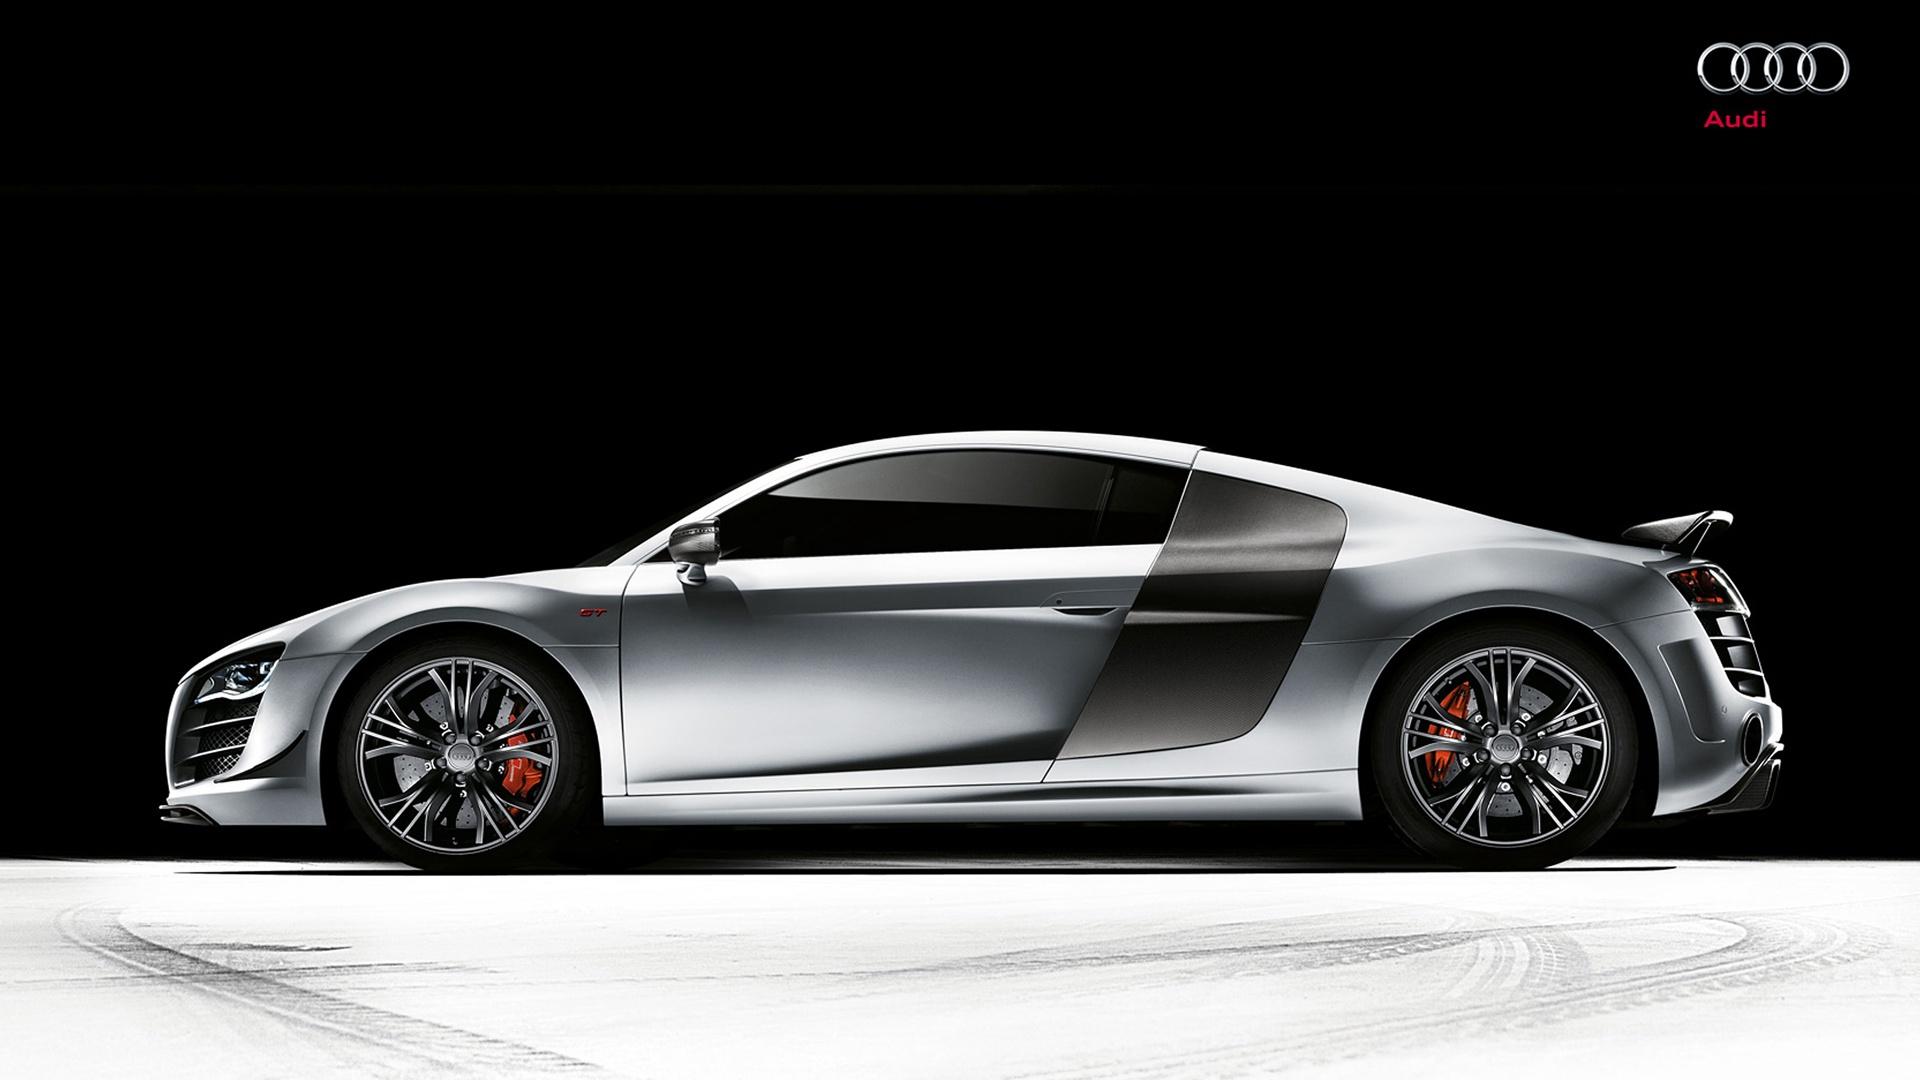 Cars Wallpapers Audi R8 Gt3 3826 1920x1080 pixel Exotic Wallpaper 1920x1080